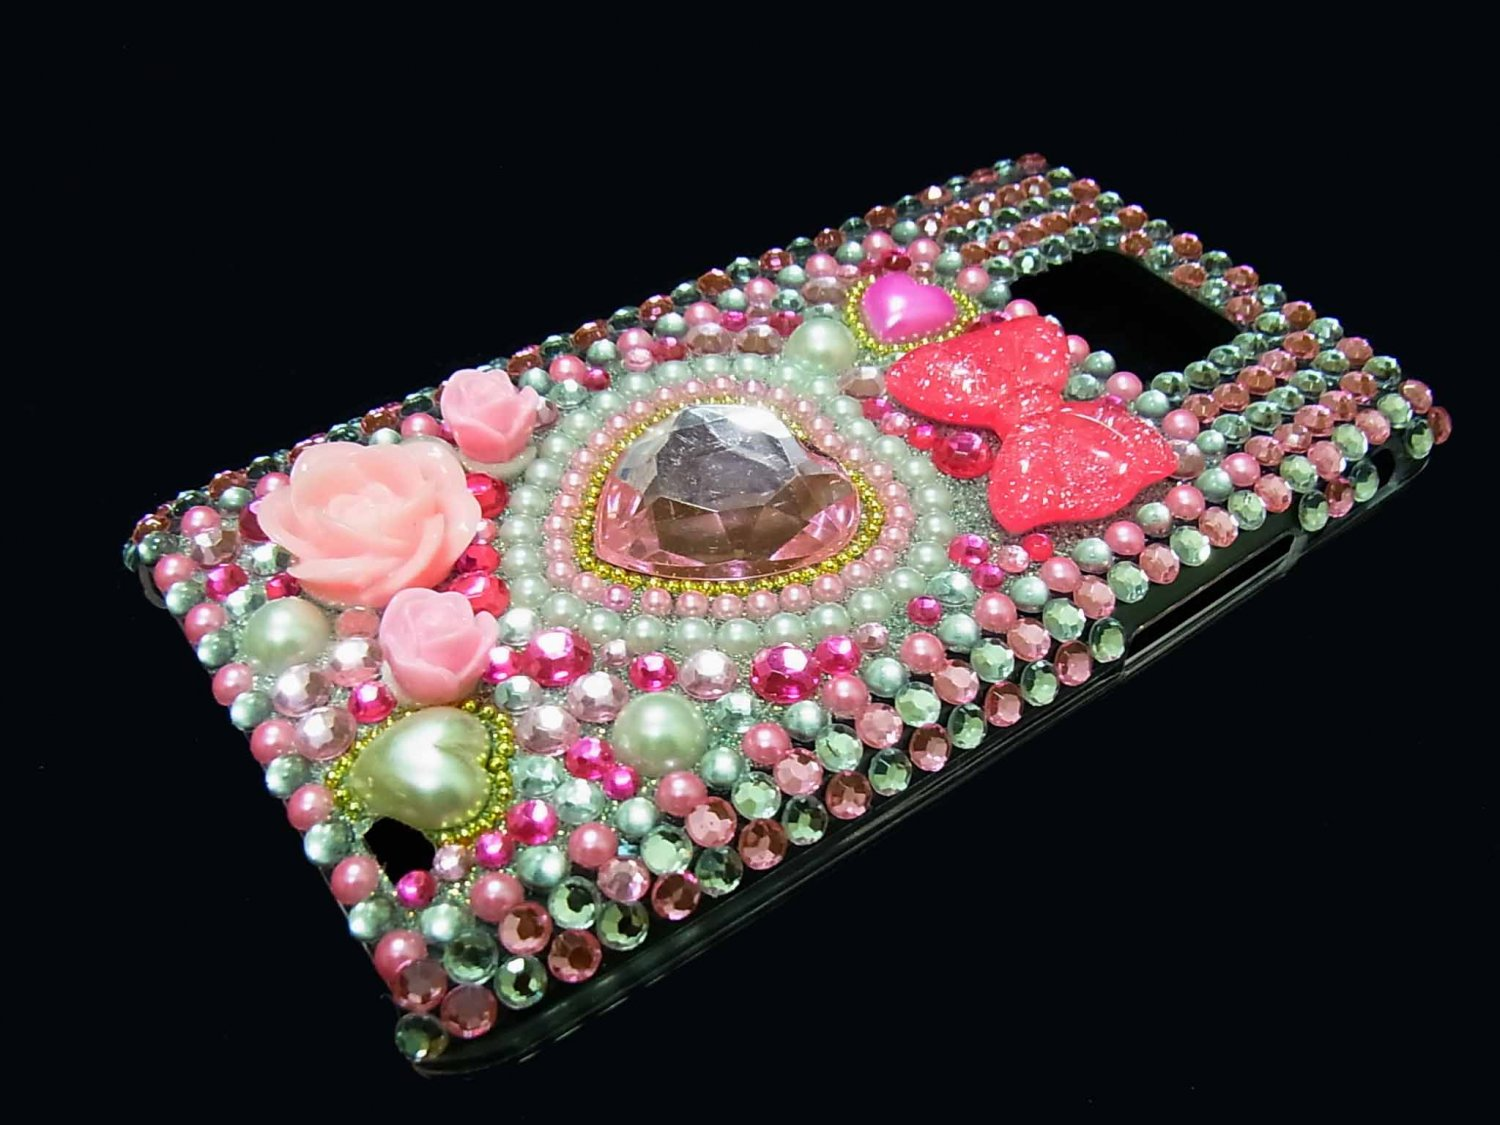 Bling Rhinestone Crystal Pink Heart Flower Pearl Case Cover for Samsung i9100 Galaxy S 2 II